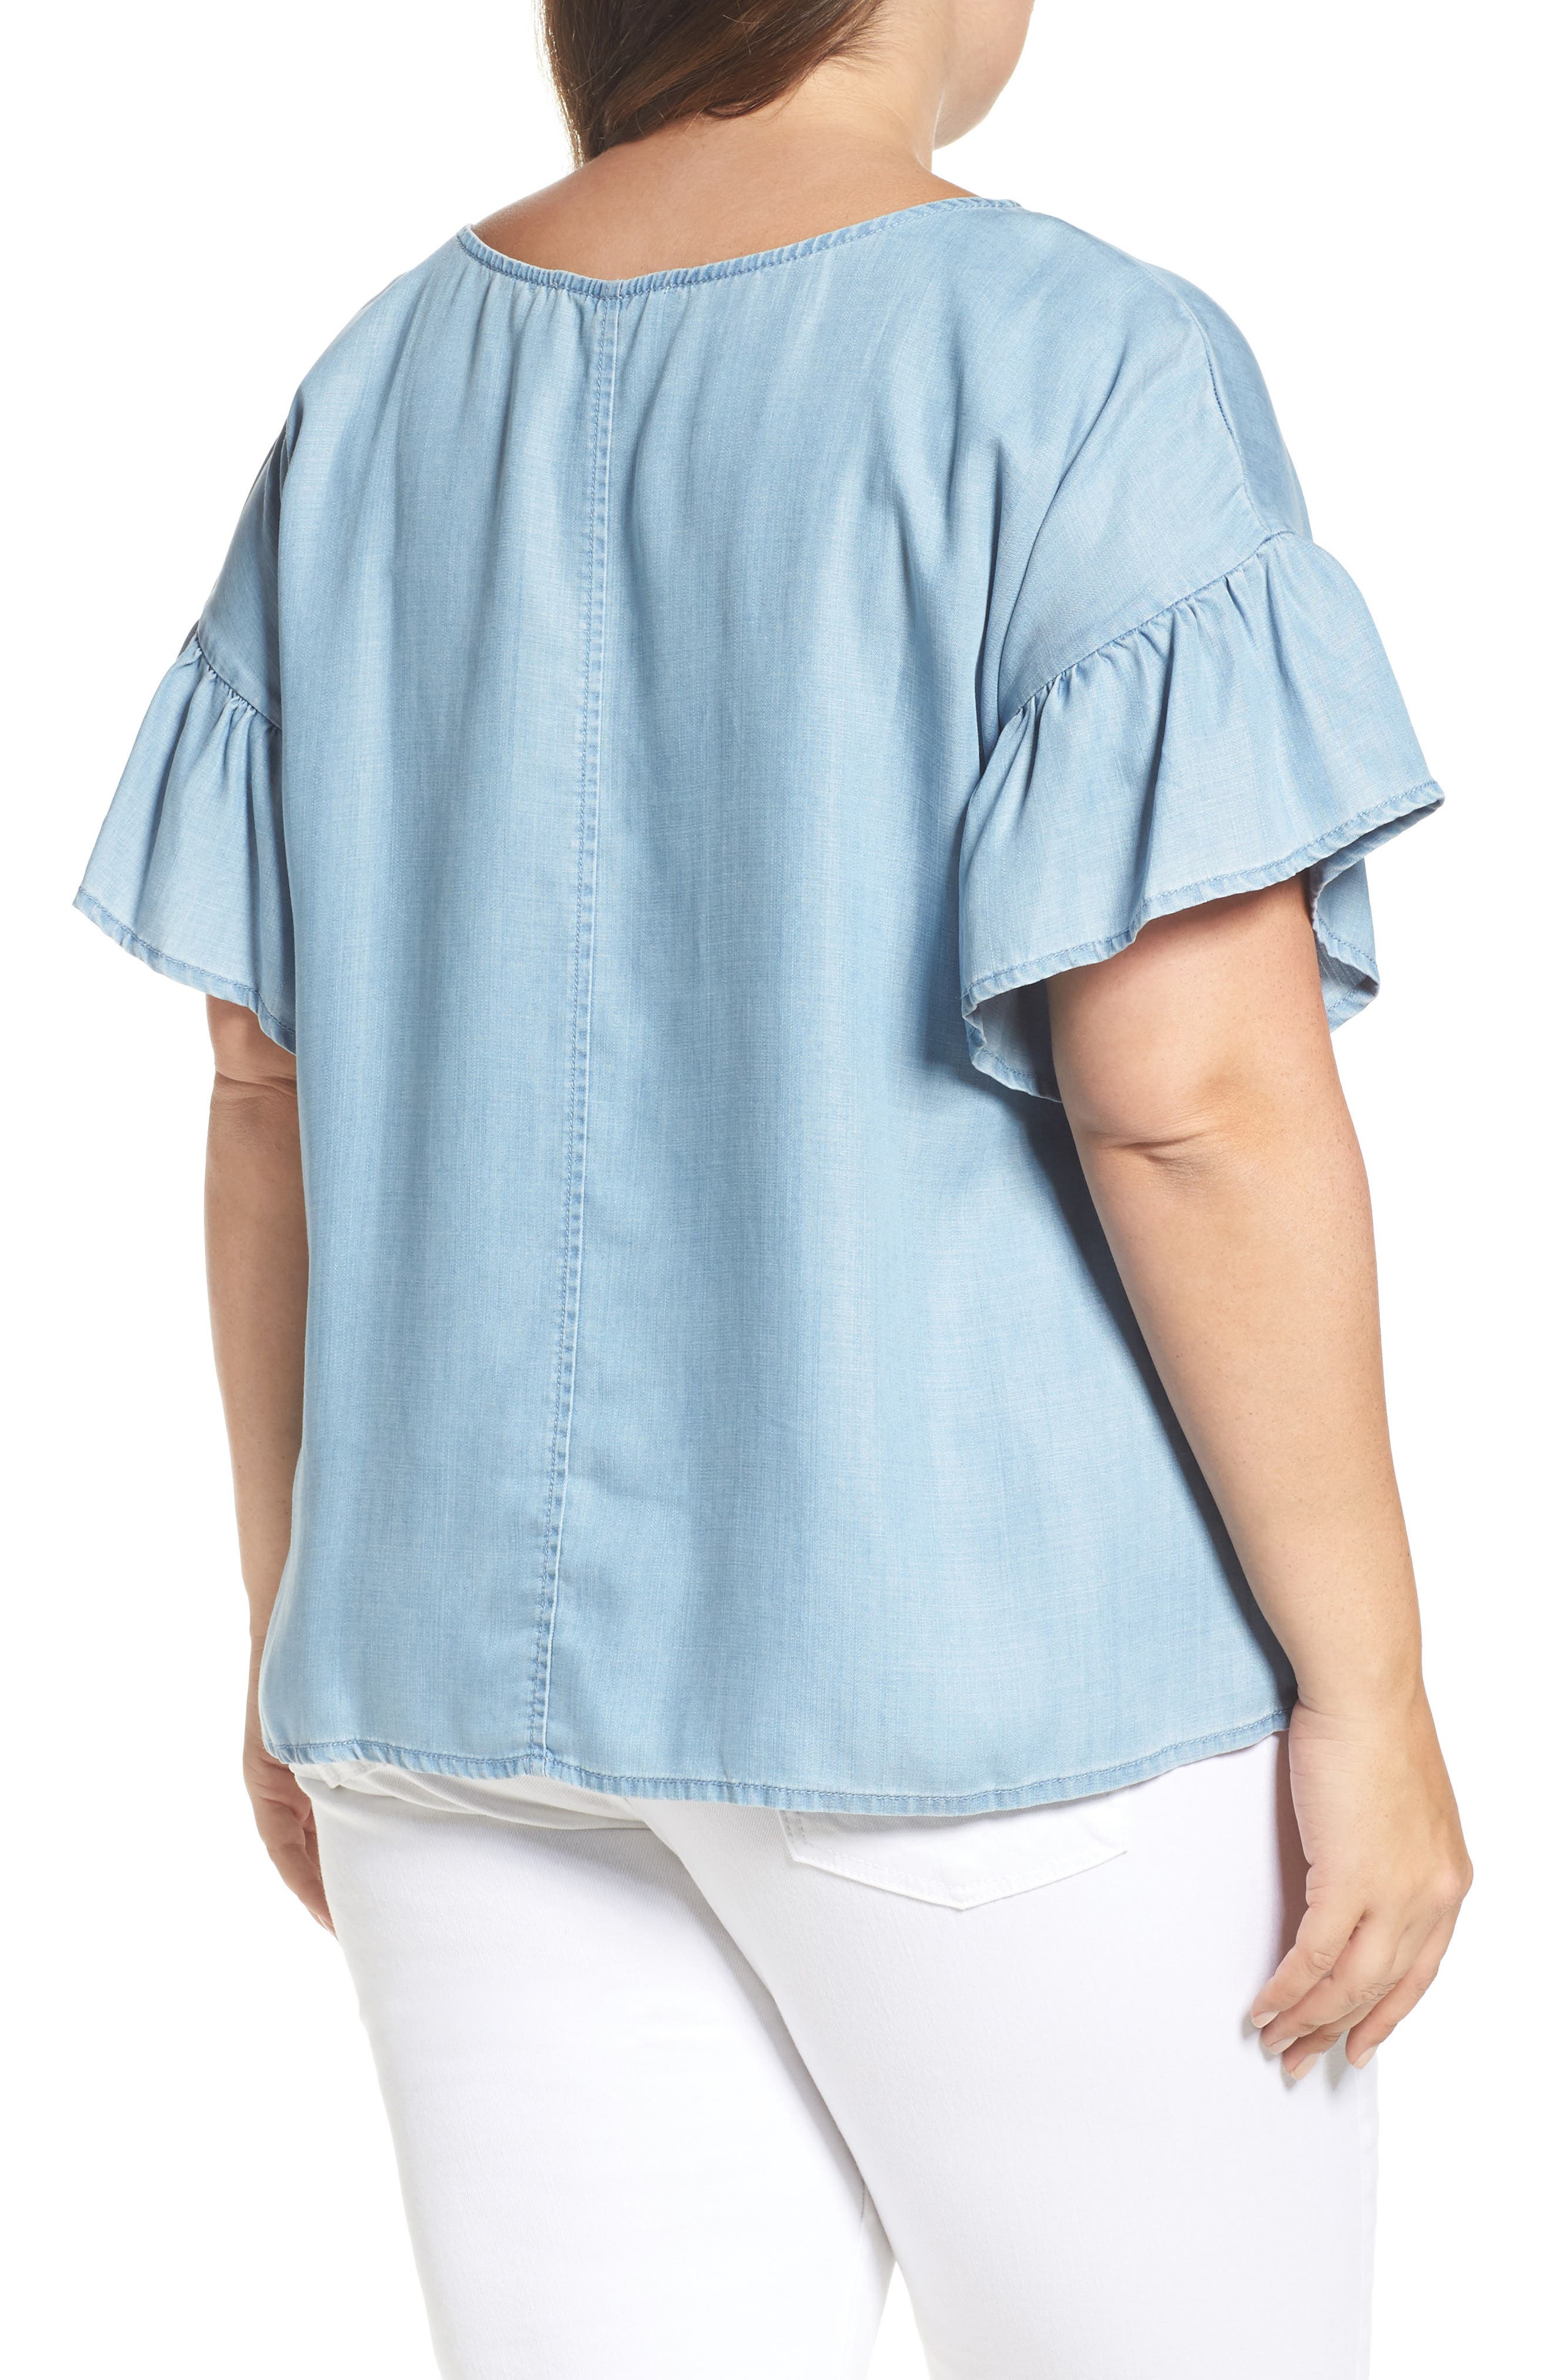 Alternate Image 2  - Two by Vince Camuto Ruffle Sleeve Chambray Top (Plus Size)